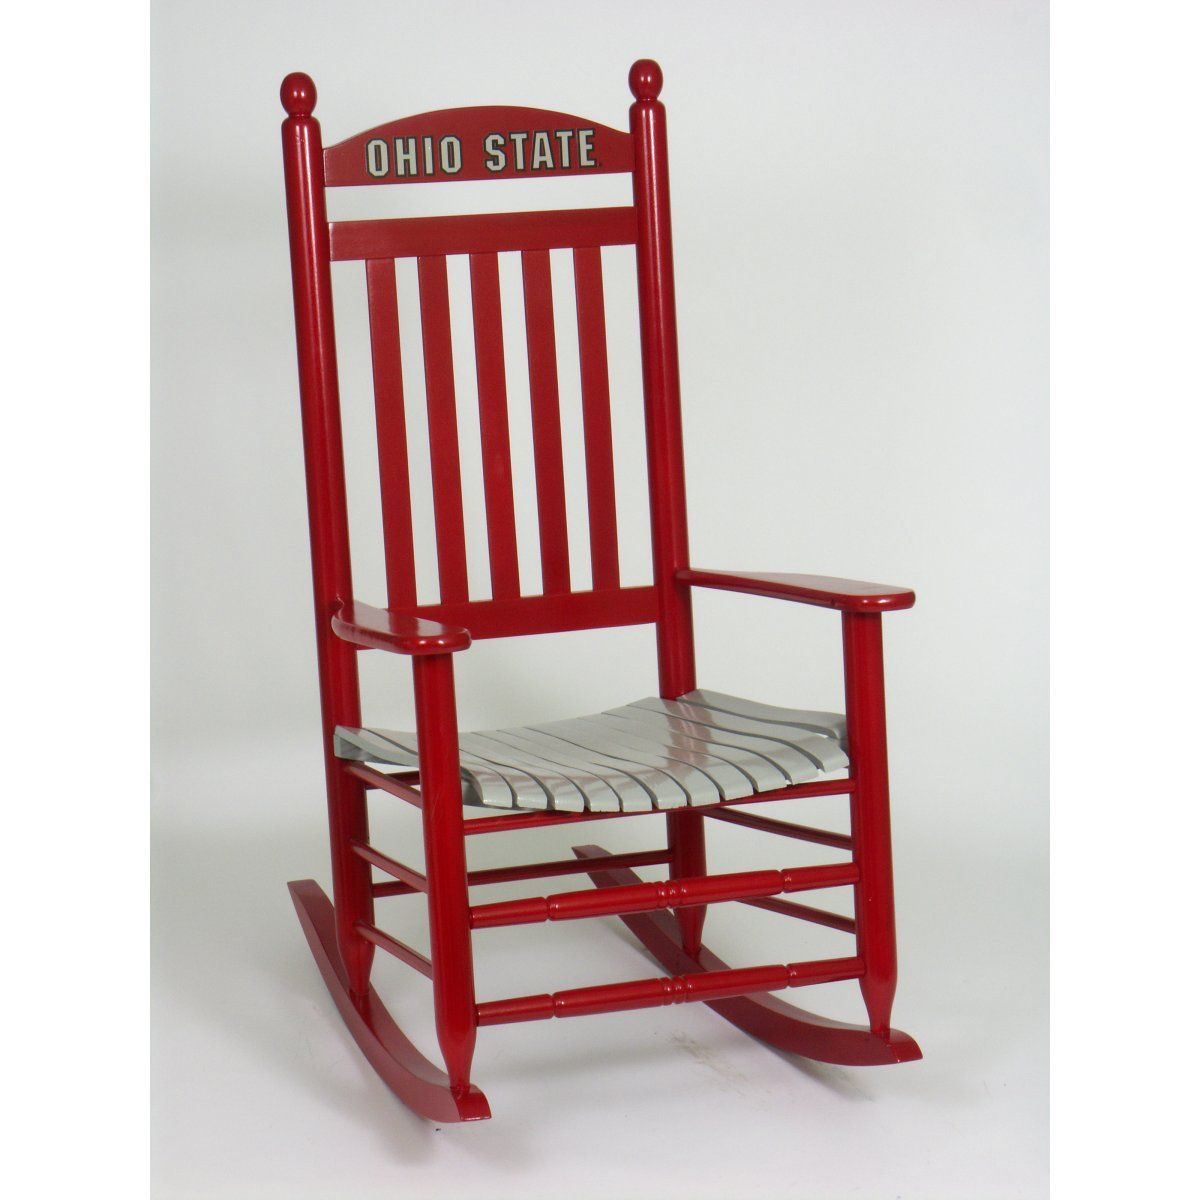 OHIO STATE ROCKING CHAIR  Indoor Rocking Chairs at